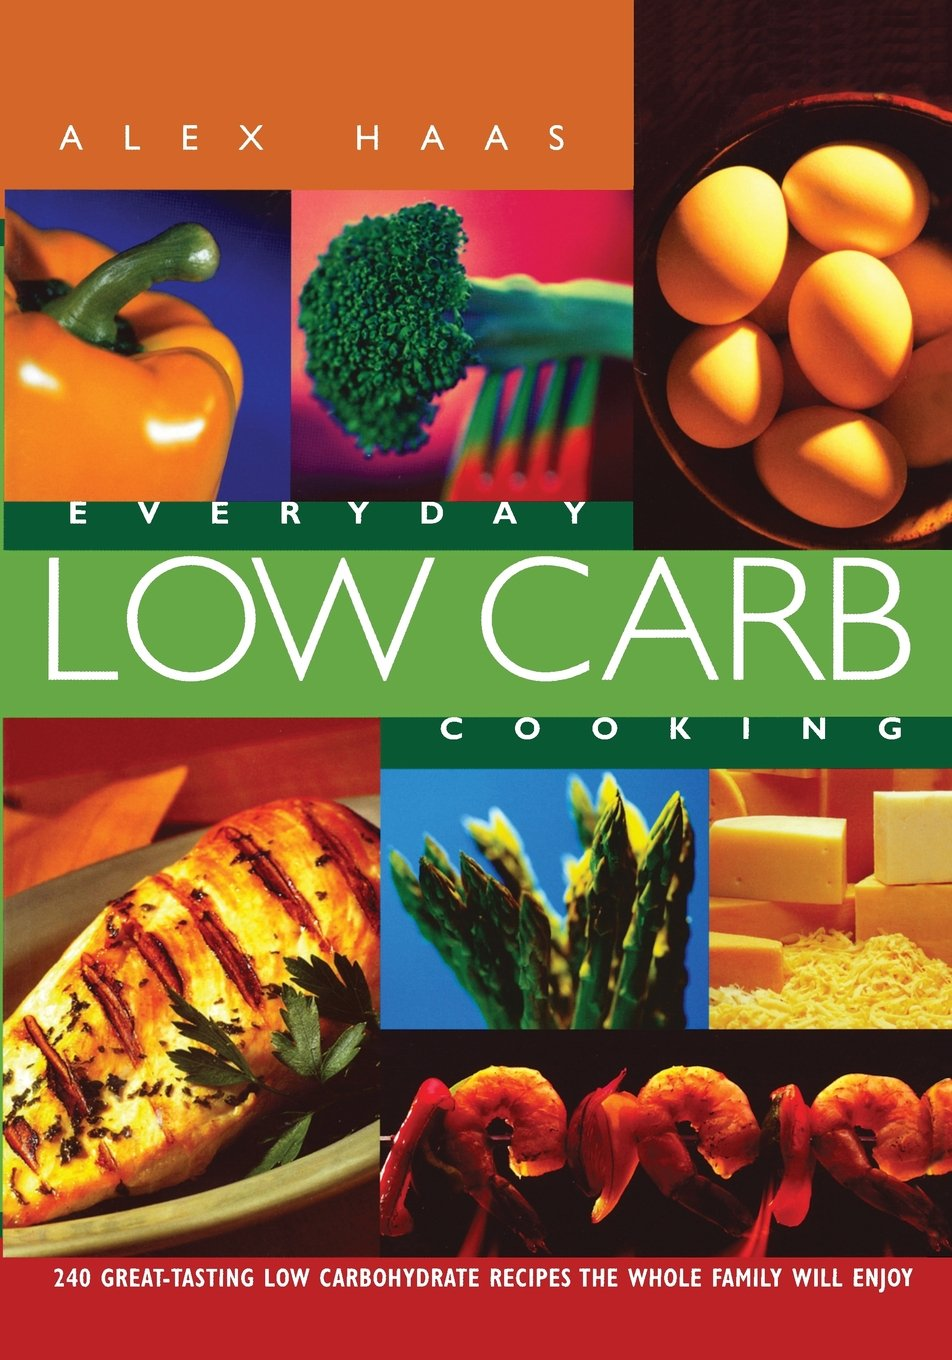 Read Online Everyday Low Carb Cooking: 240 Great-Tasting Low Carbohydrate Recipes the Whole Family will Enjoy pdf epub